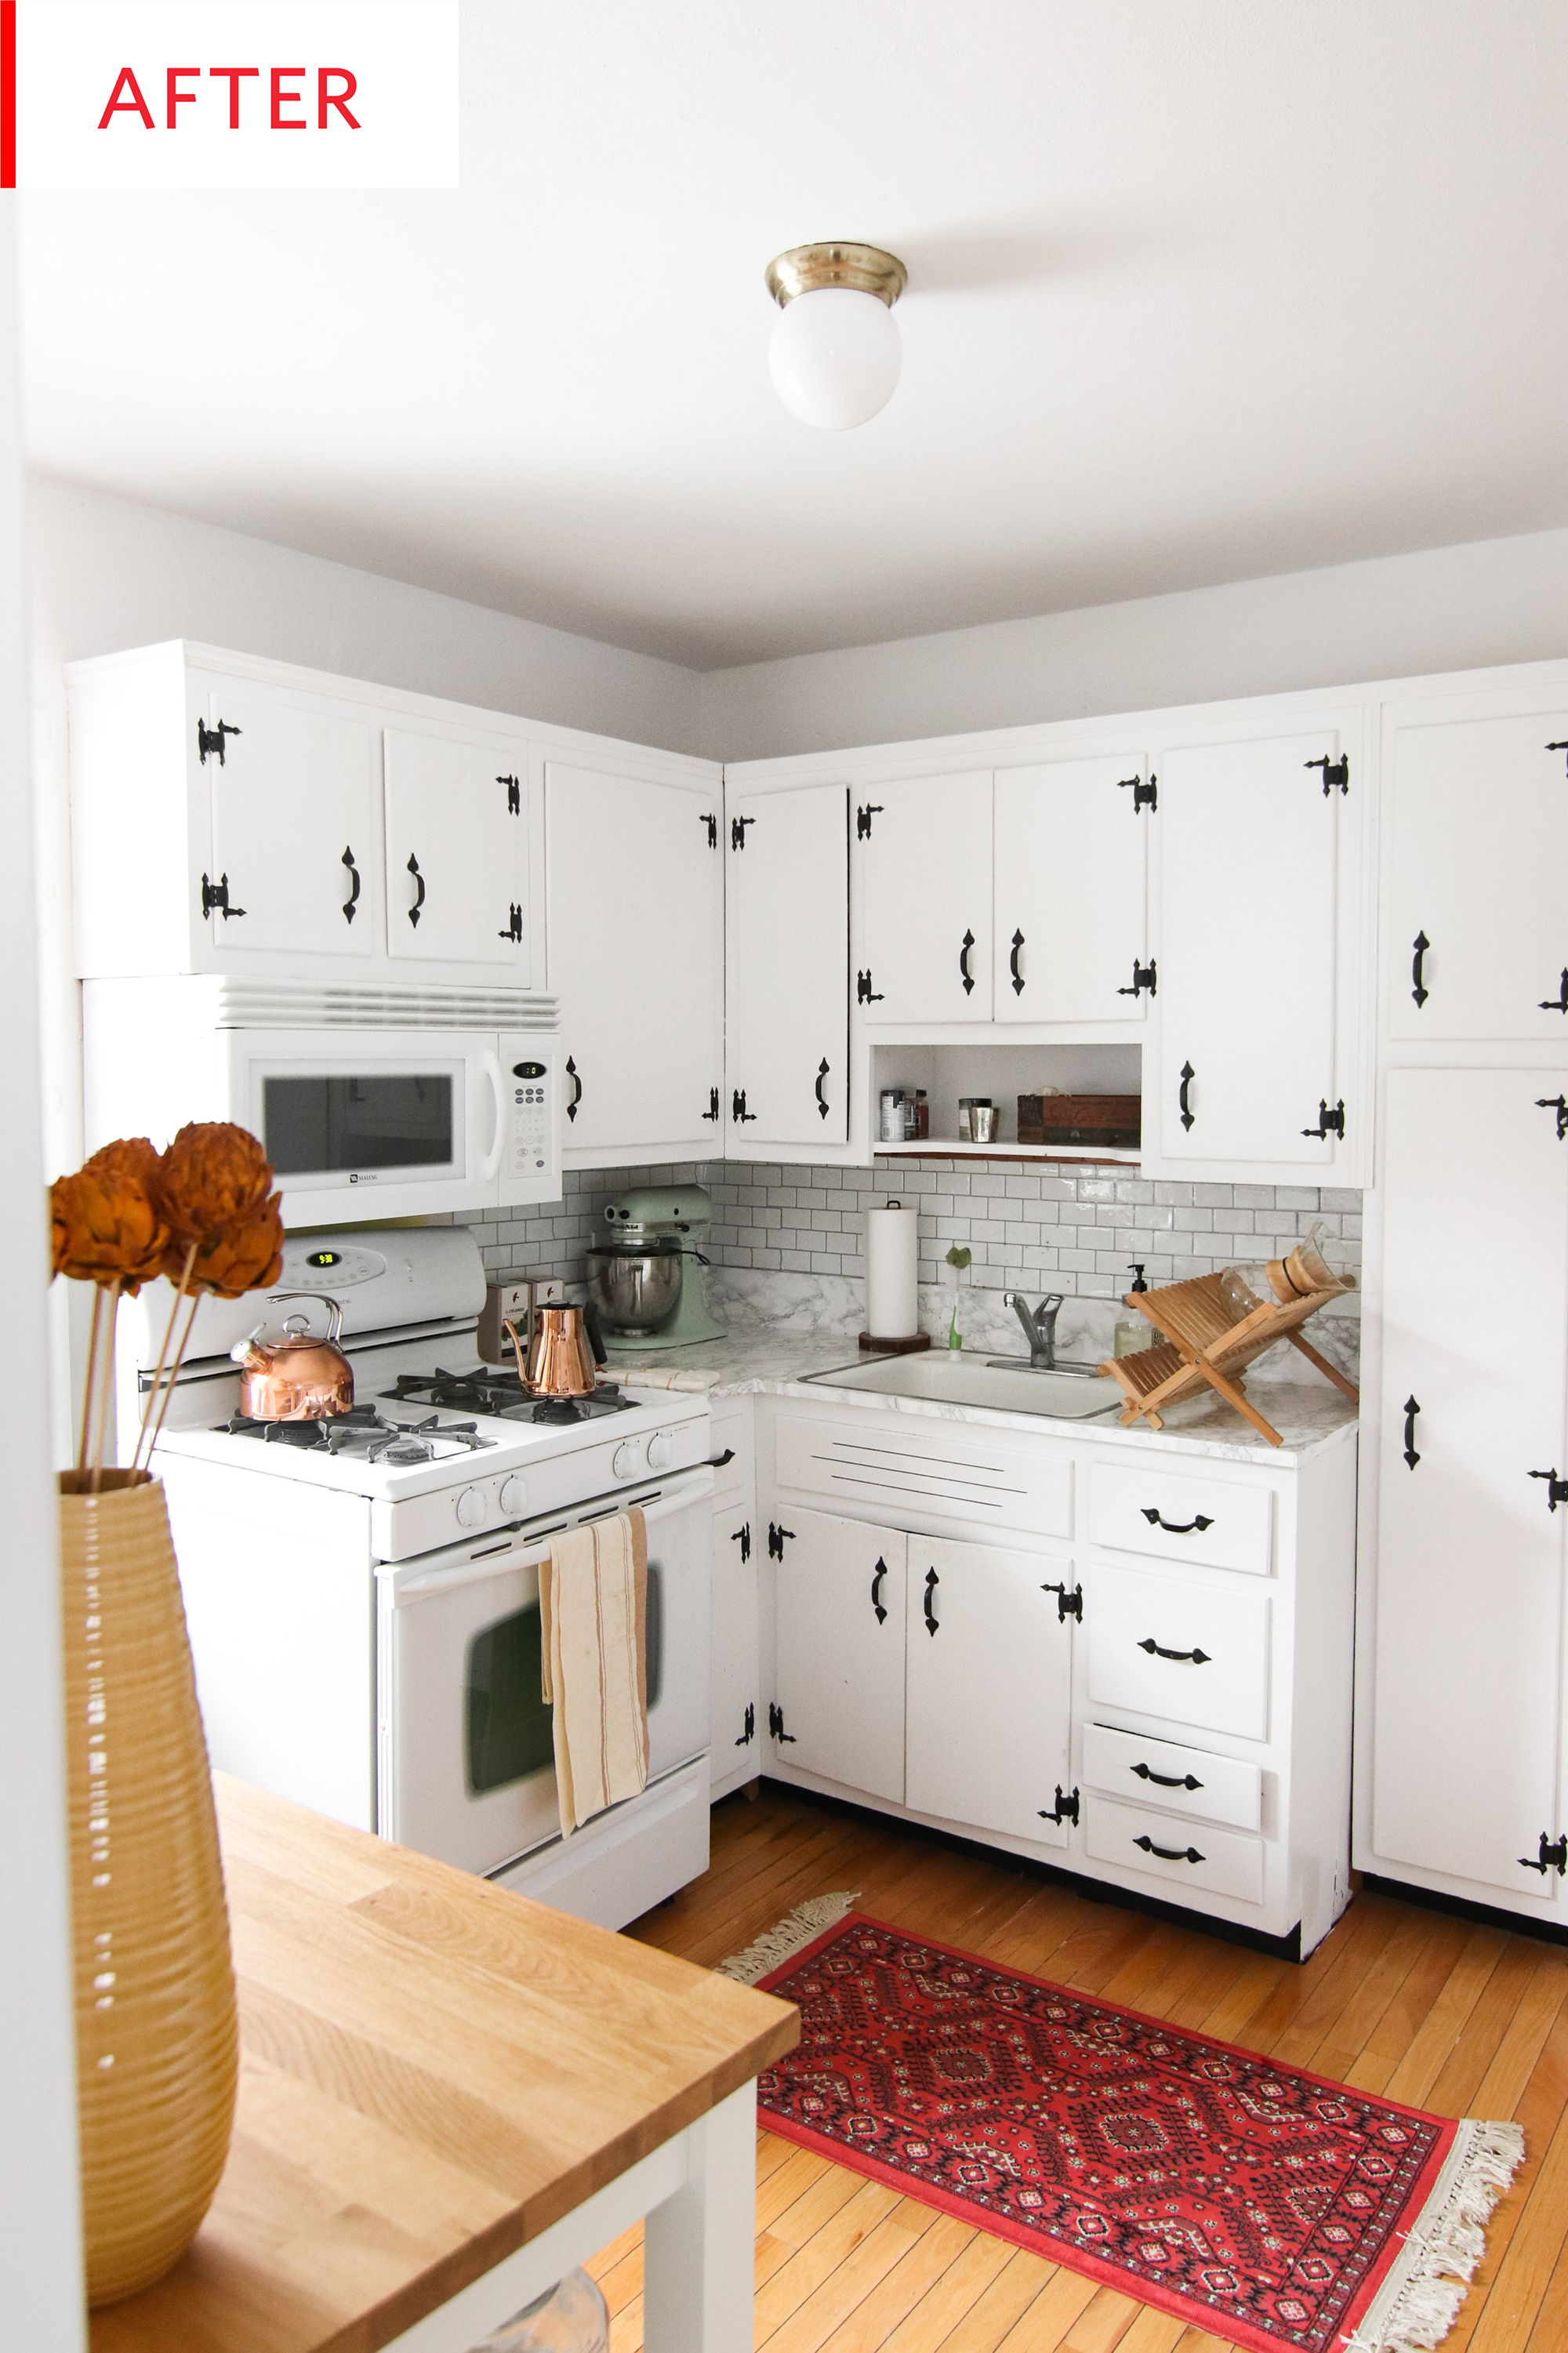 Before And After The Secret To Successfully Painting Old Kitchen Cabinets Old Kitchen Cabinets New Kitchen Cabinets Kitchen Cabinets Before And After